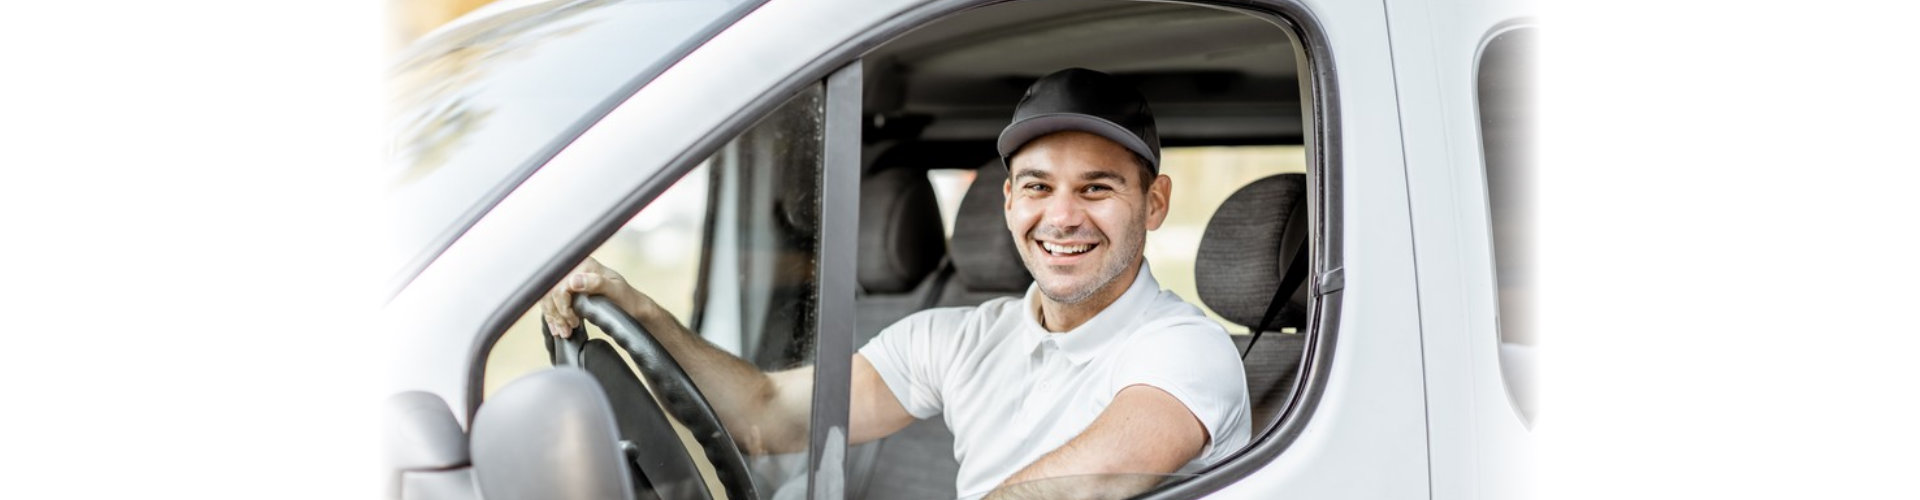 Portrait of a cheerful delivery driver in uniform looking out the window